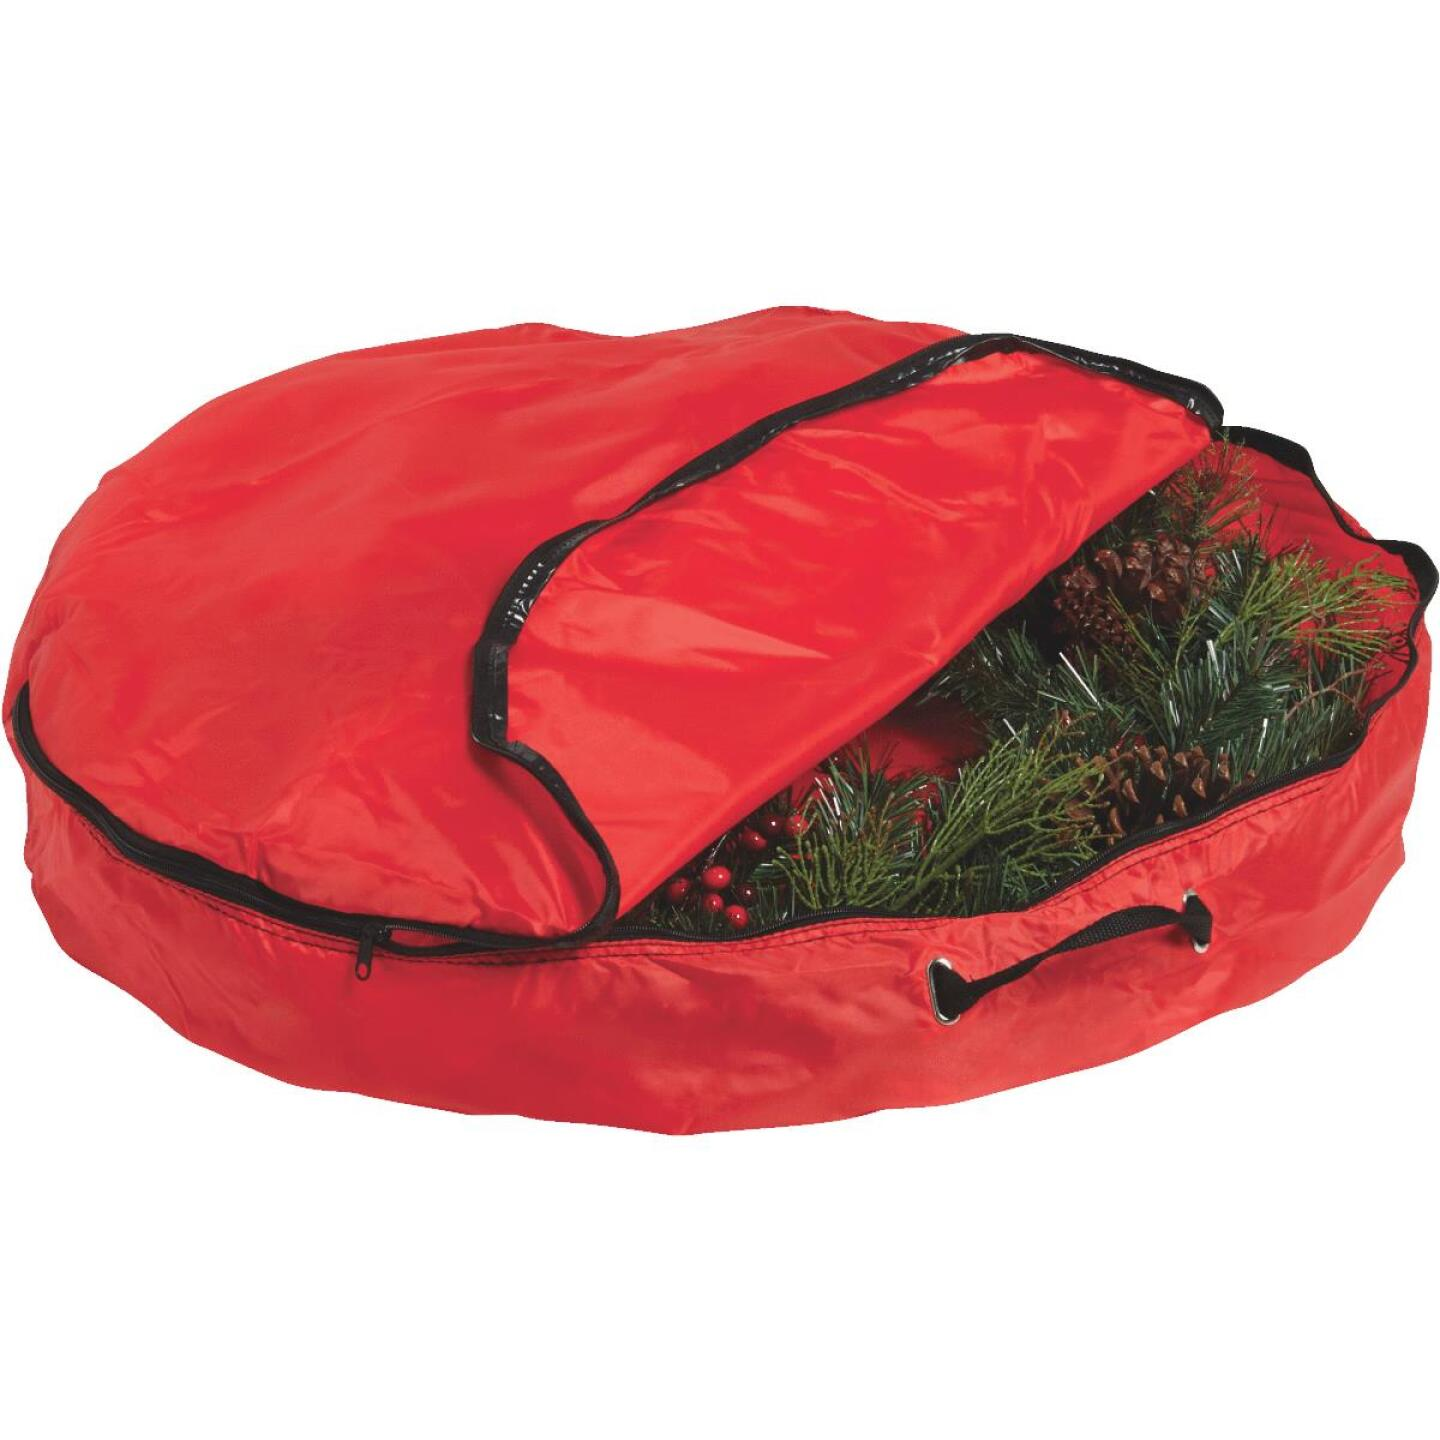 St Nick's Choice 6 In. D x 30 In. Dia Nylon Wreath Storage Bag Image 3